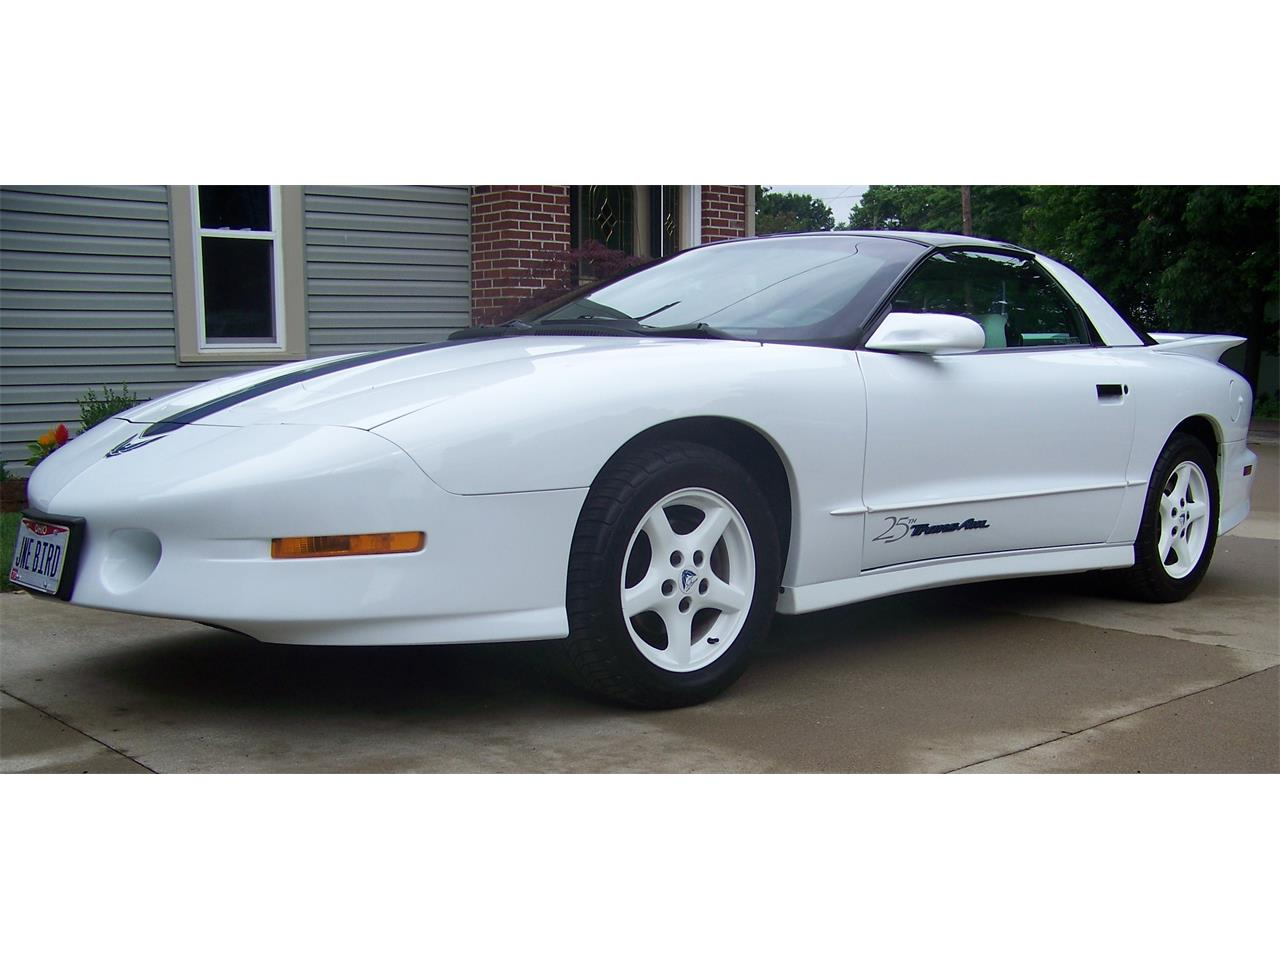 Large Picture of 1994 Firebird Trans Am located in Ohio - $17,500.00 Offered by a Private Seller - NOQC